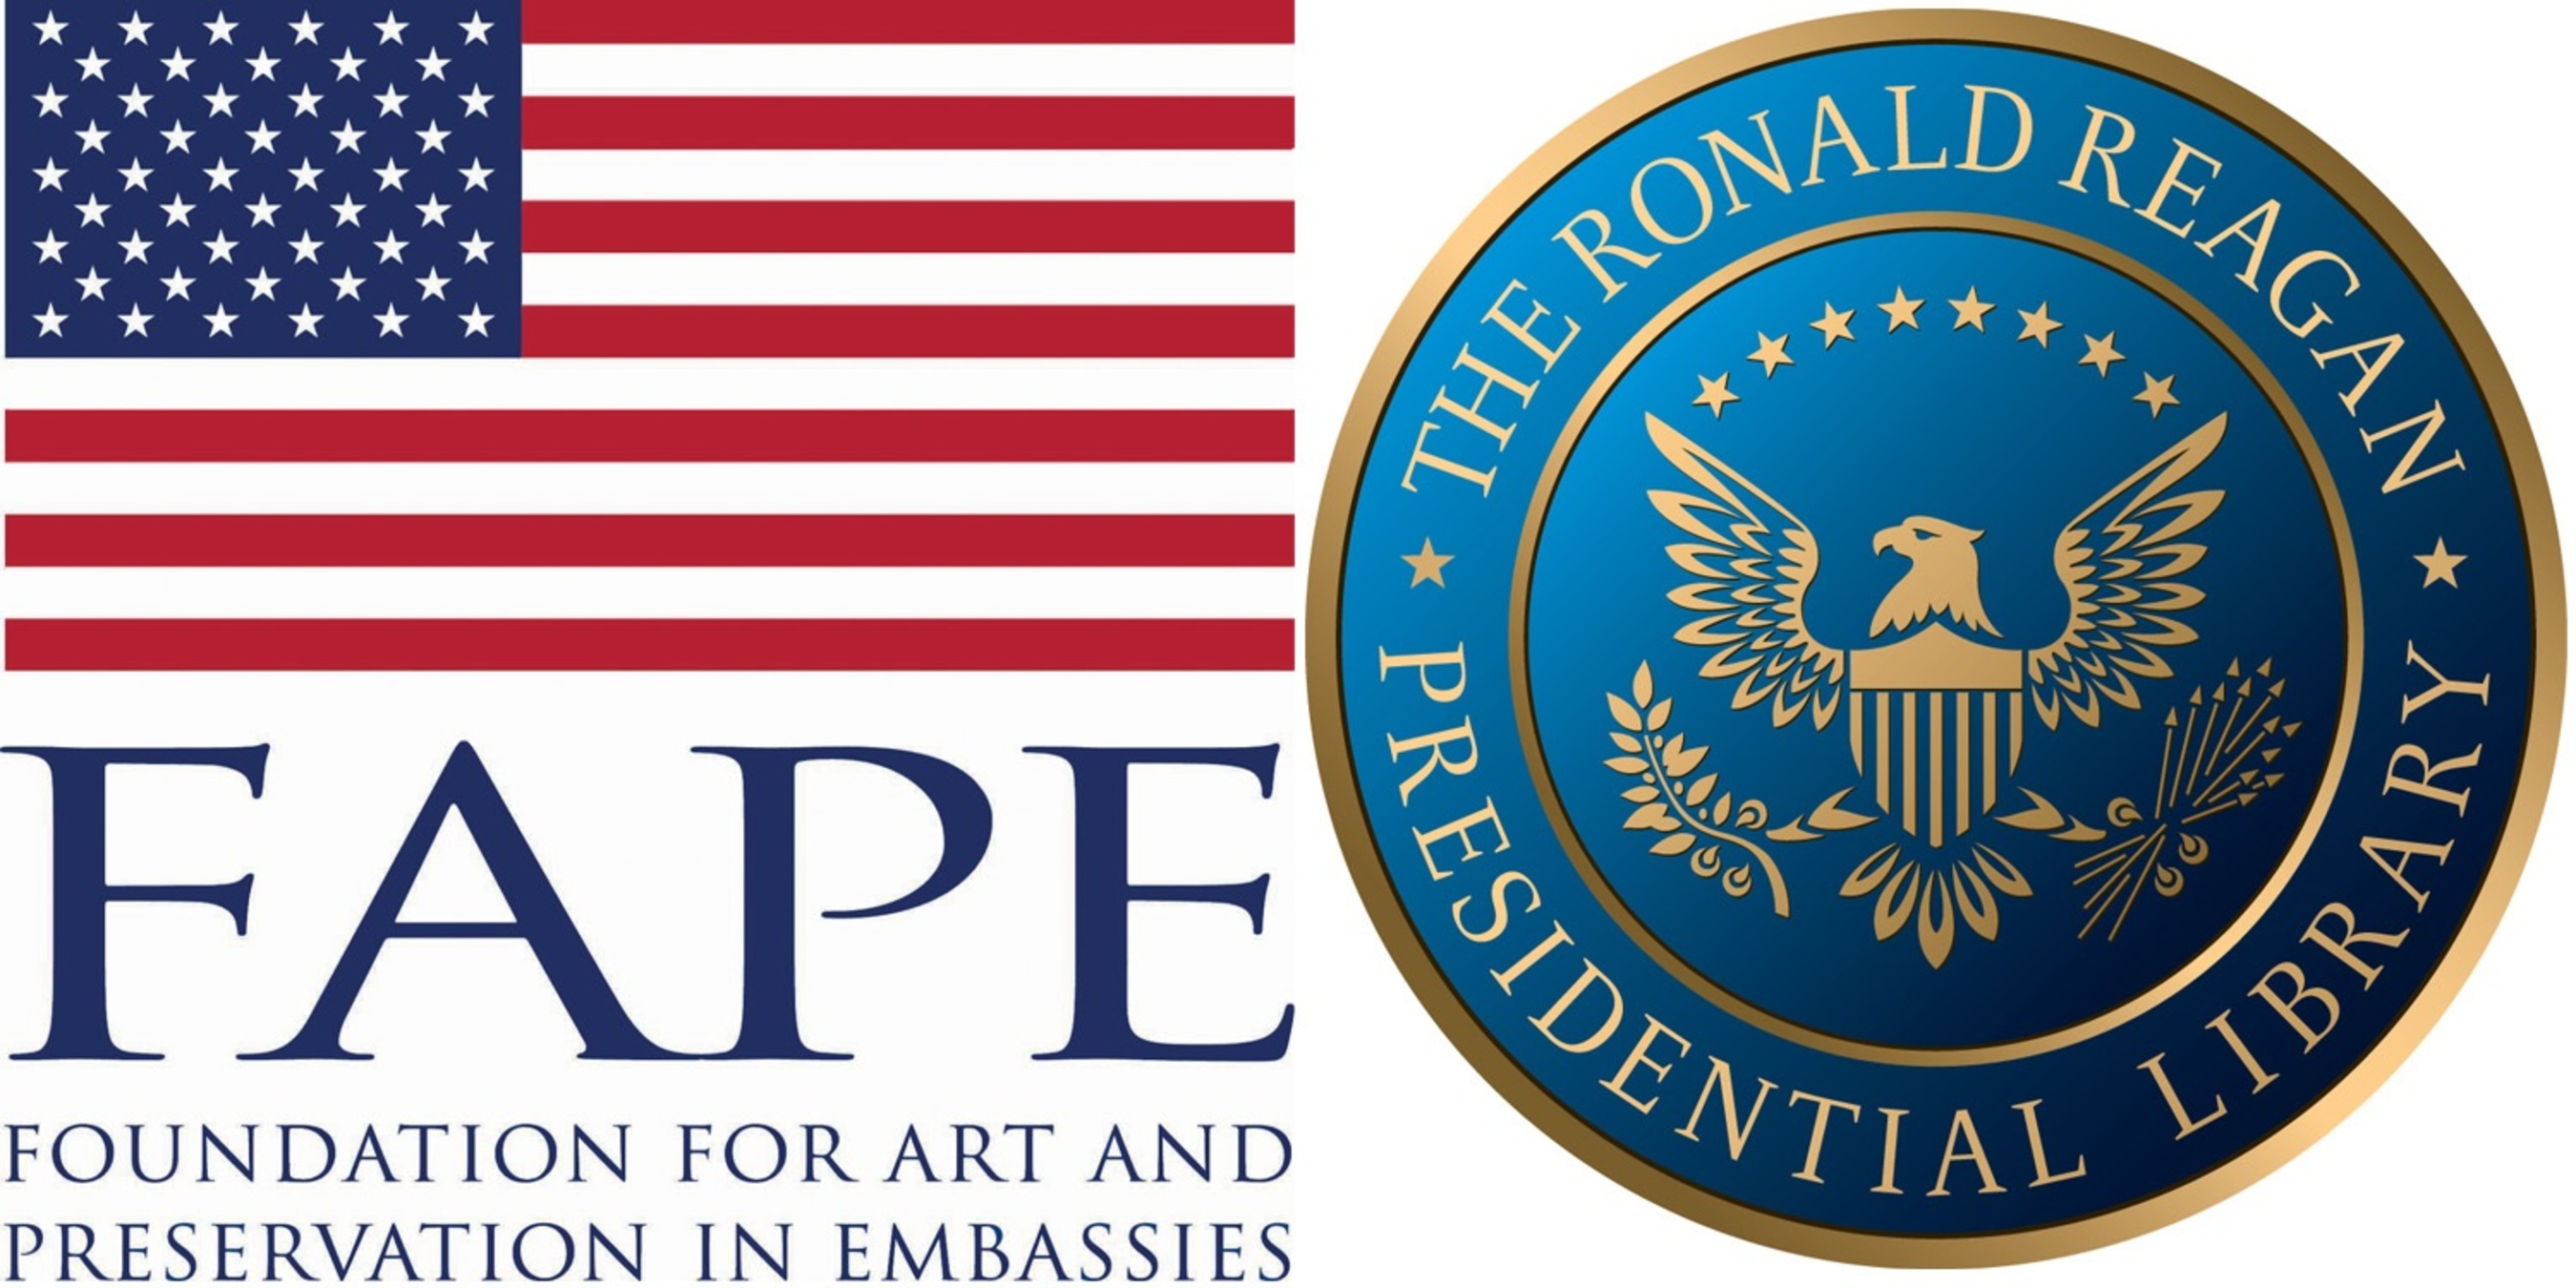 FAPE Announces Historic Exhibition at The Ronald Reagan Presidential Library and Museum